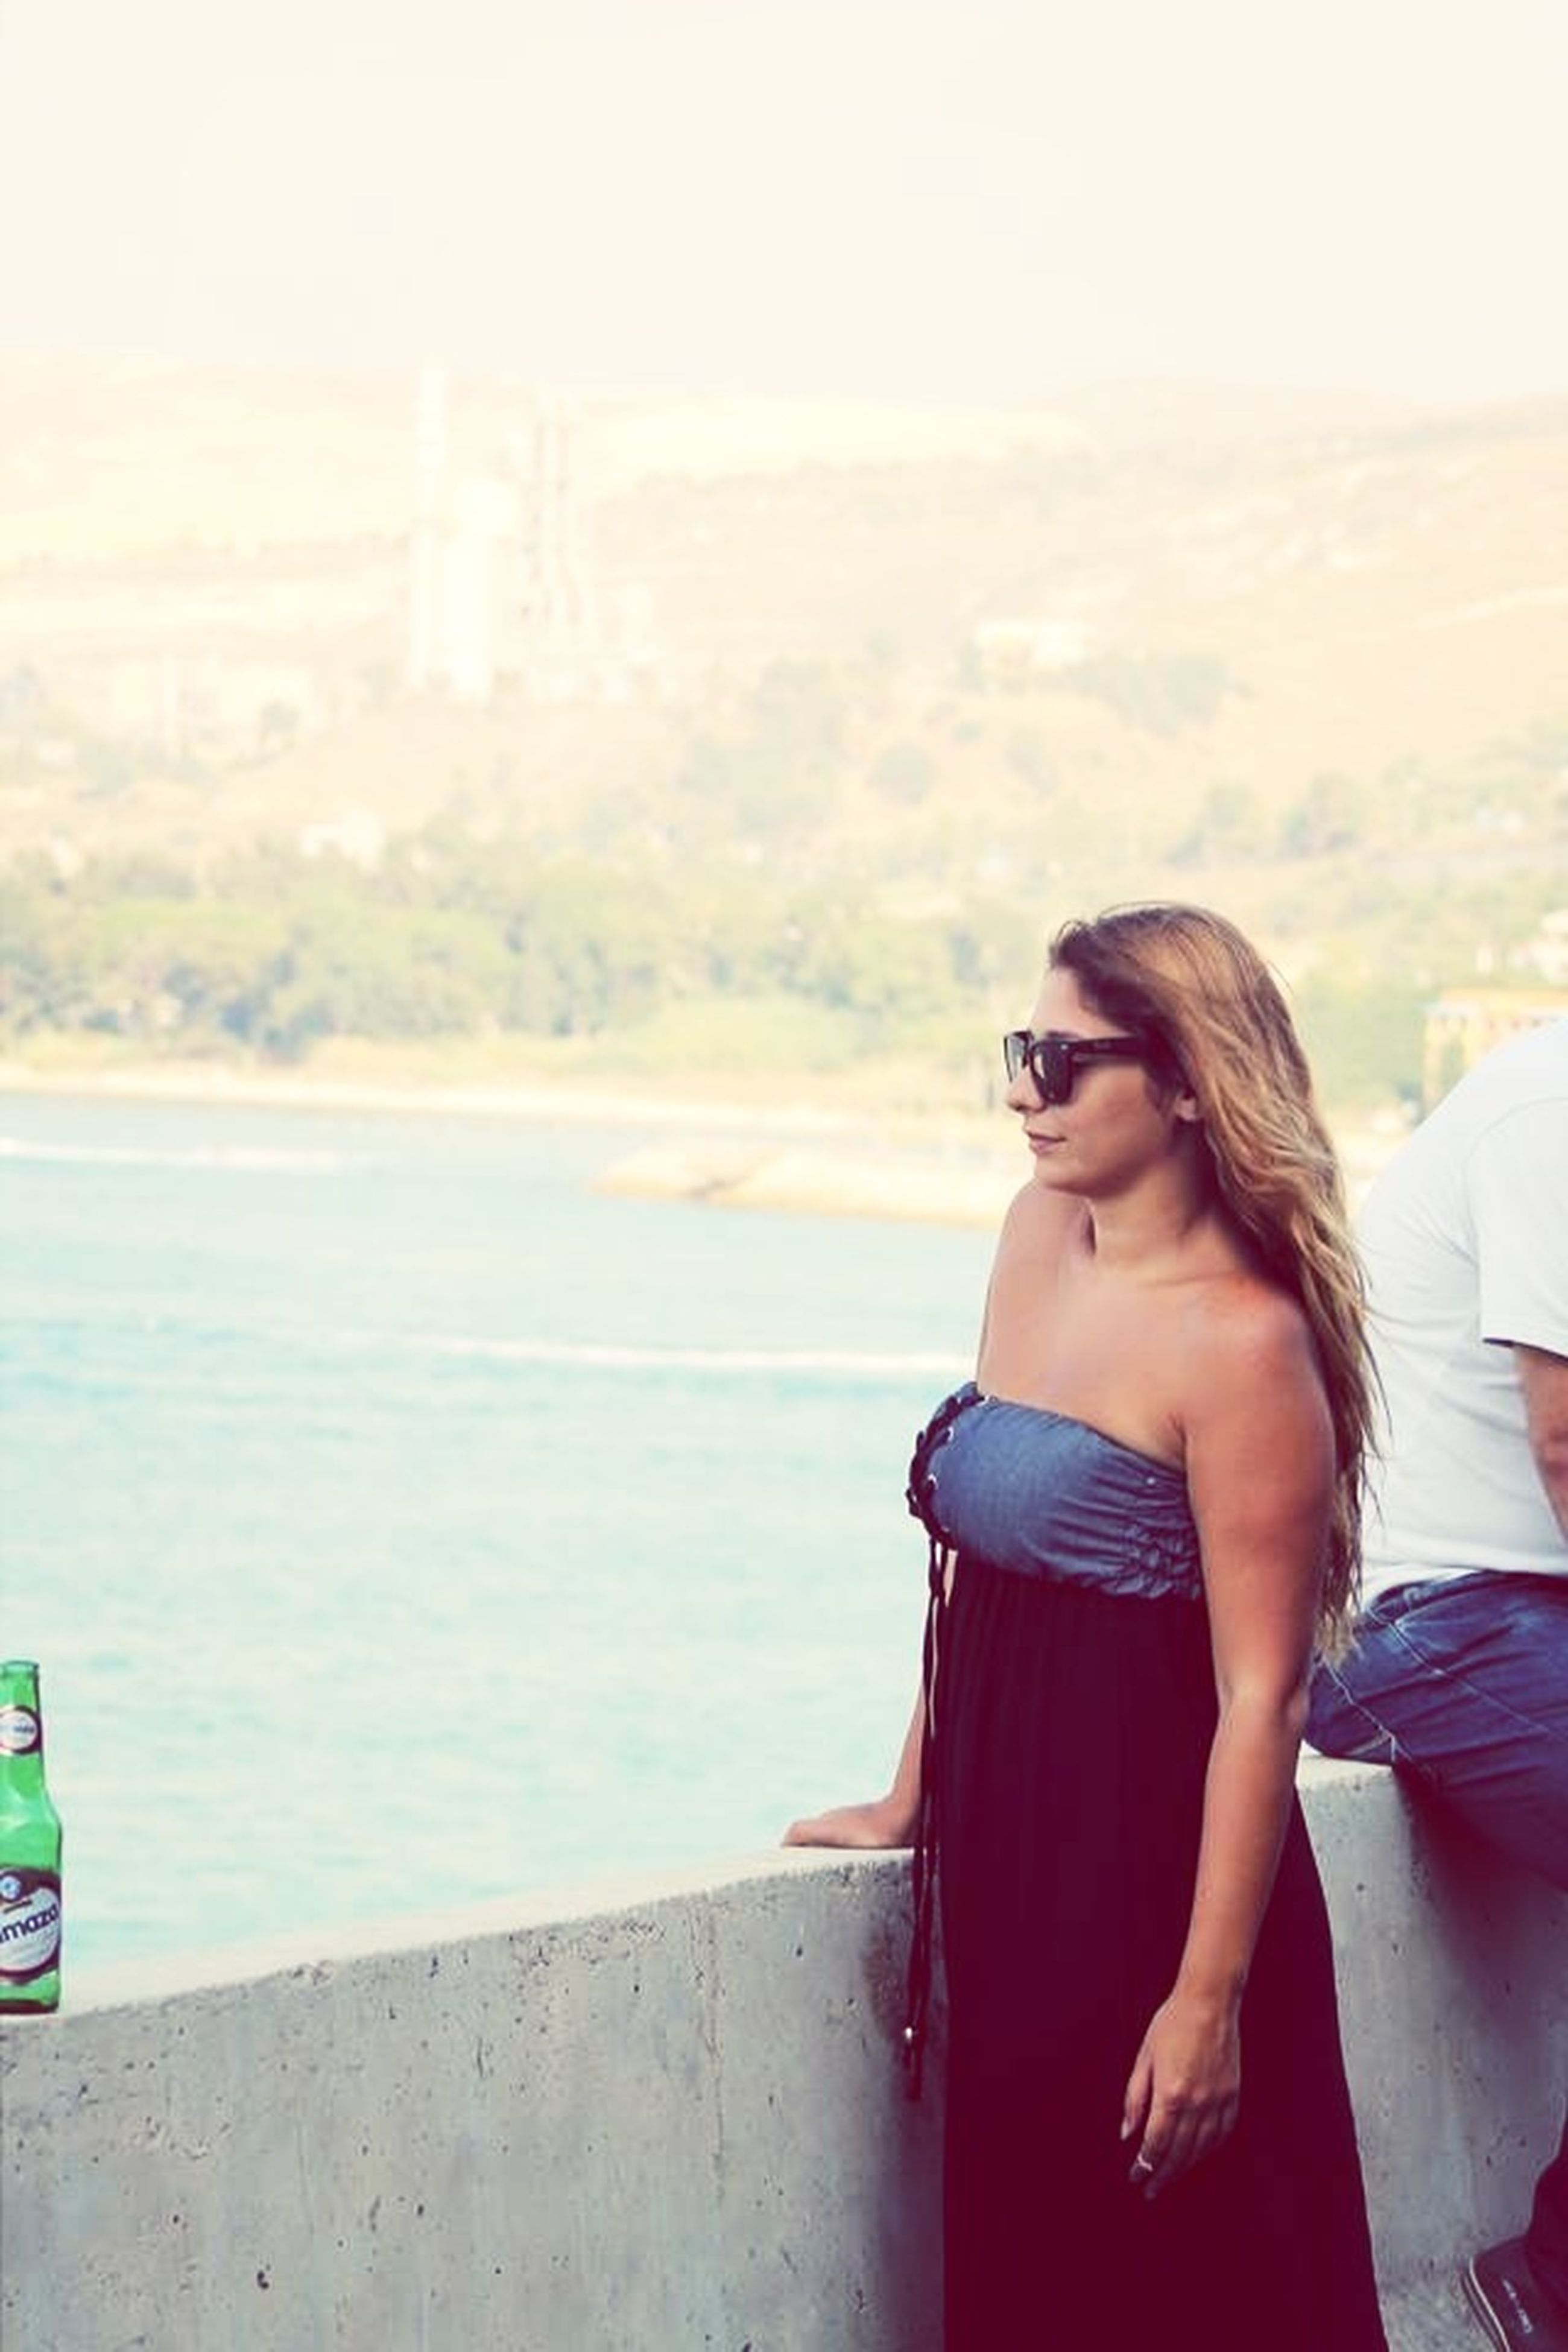 young adult, lifestyles, leisure activity, person, casual clothing, young women, sea, water, beach, sunglasses, focus on foreground, standing, waist up, long hair, side view, sitting, looking at camera, portrait